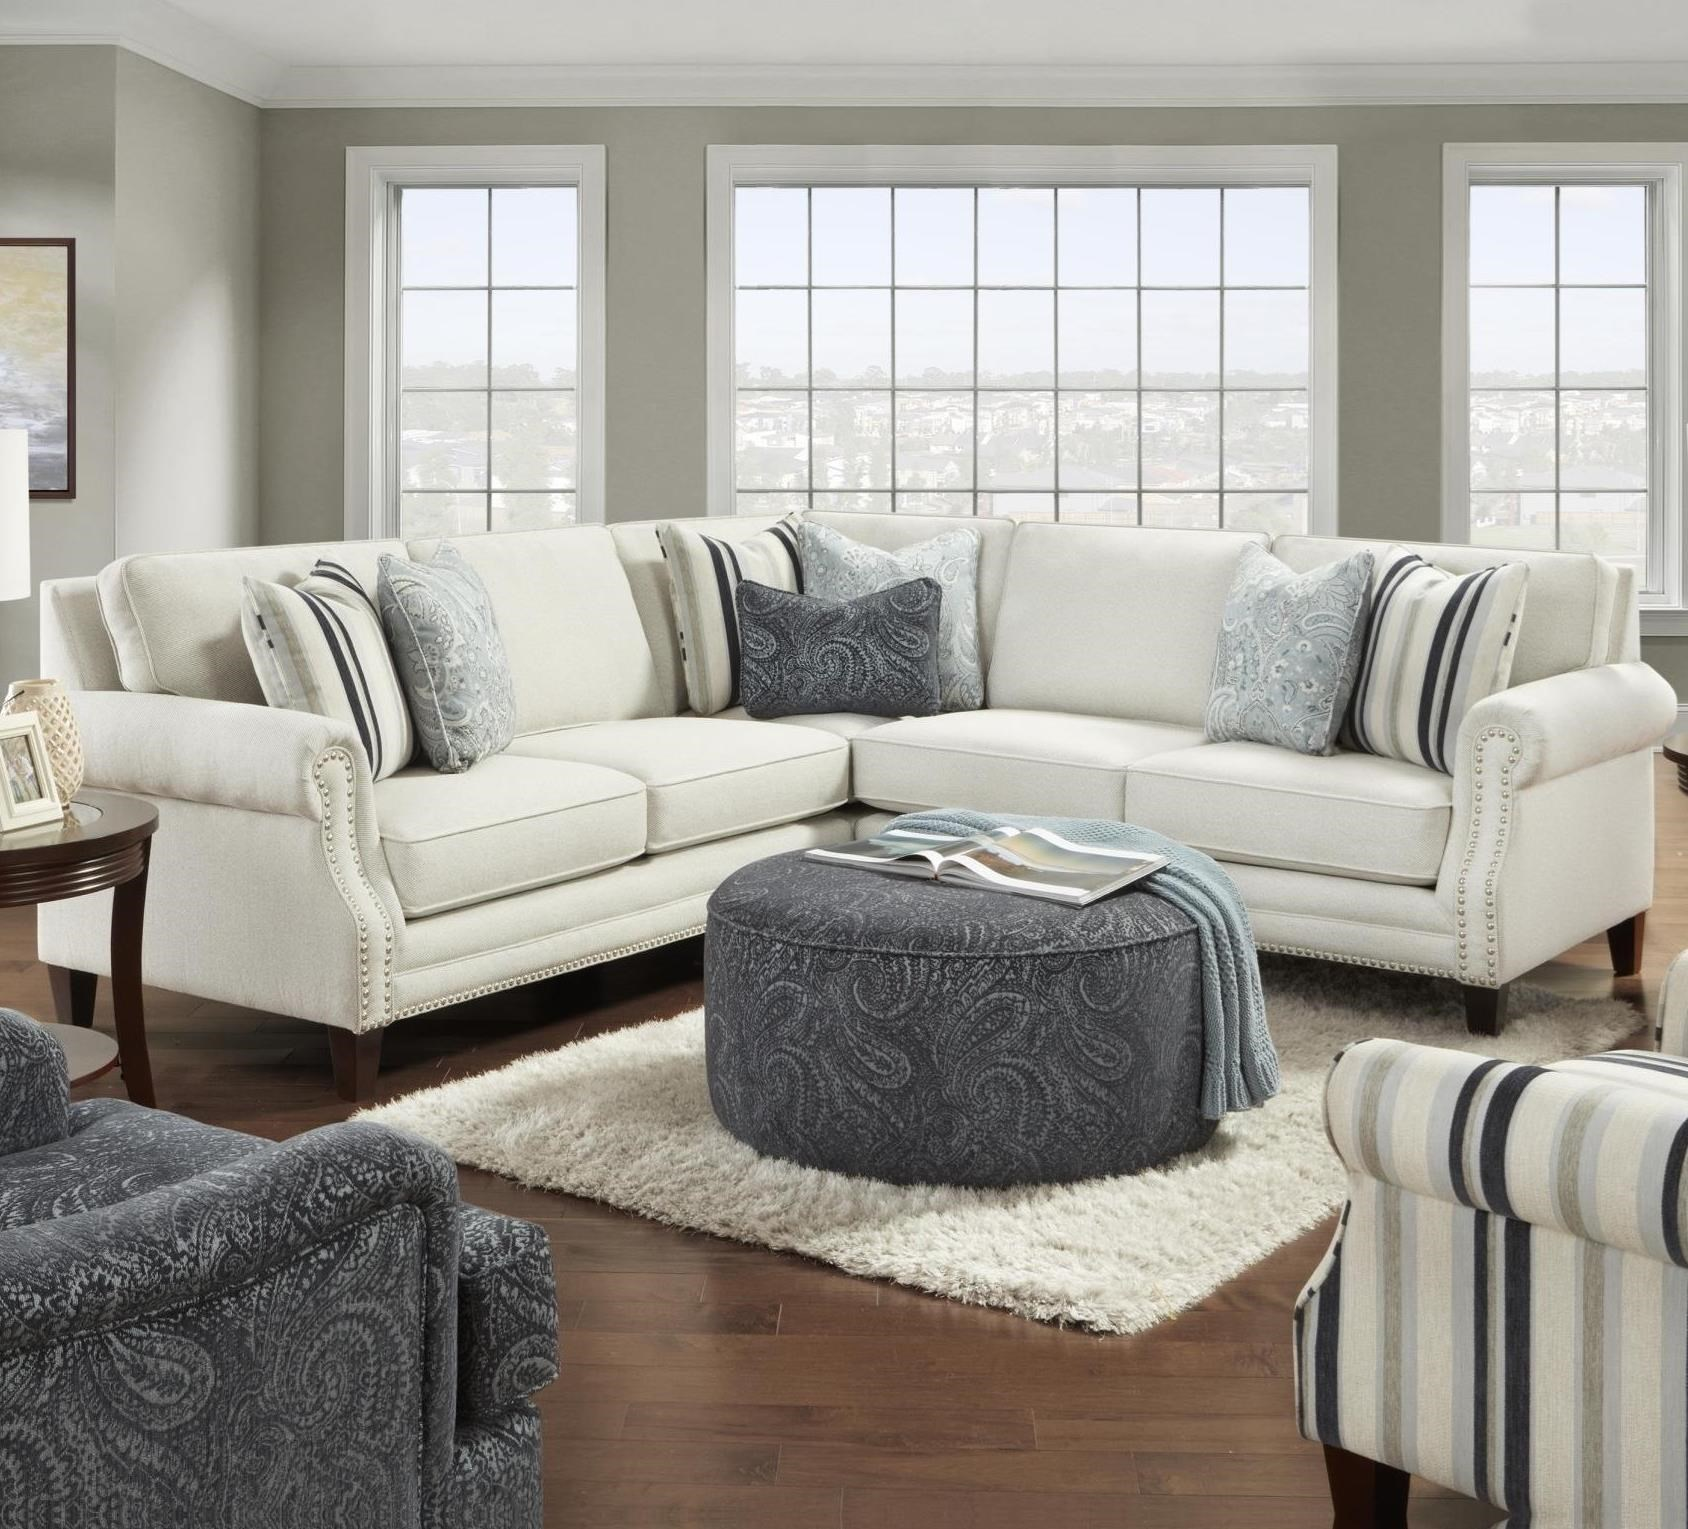 Picture of: Fusion Furniture 2530 Transitional 4 Seat Sectional Sofa With Nailhead Trim Howell Furniture Sectional Sofas